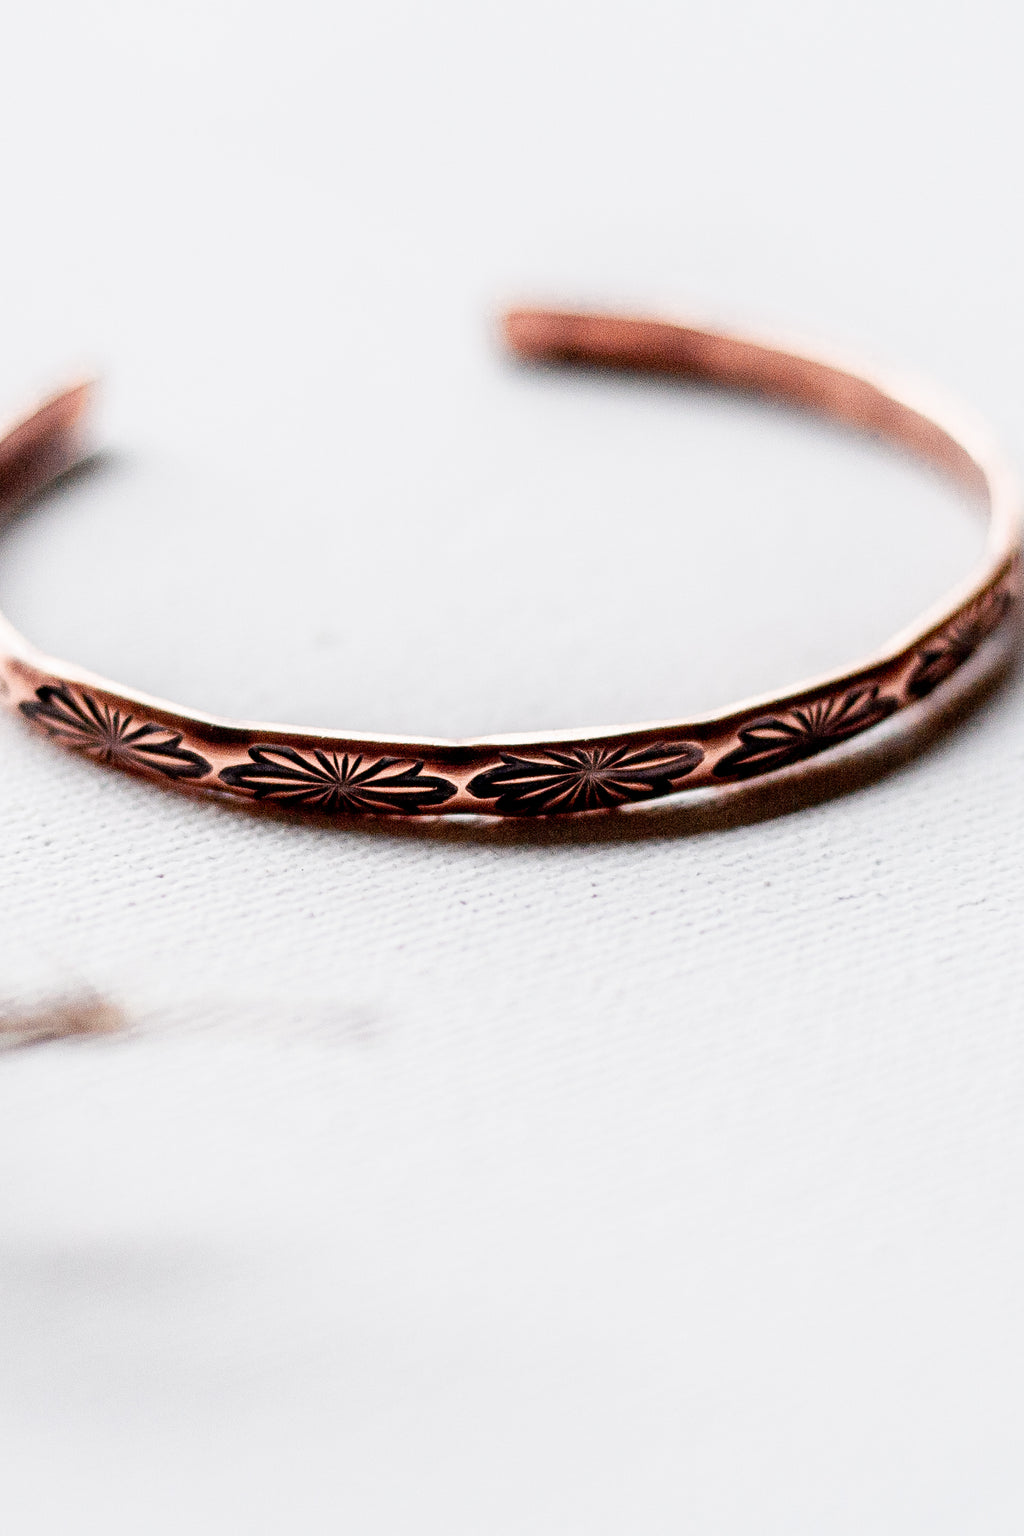 Butterfly Hand Stamped Copper Cuff